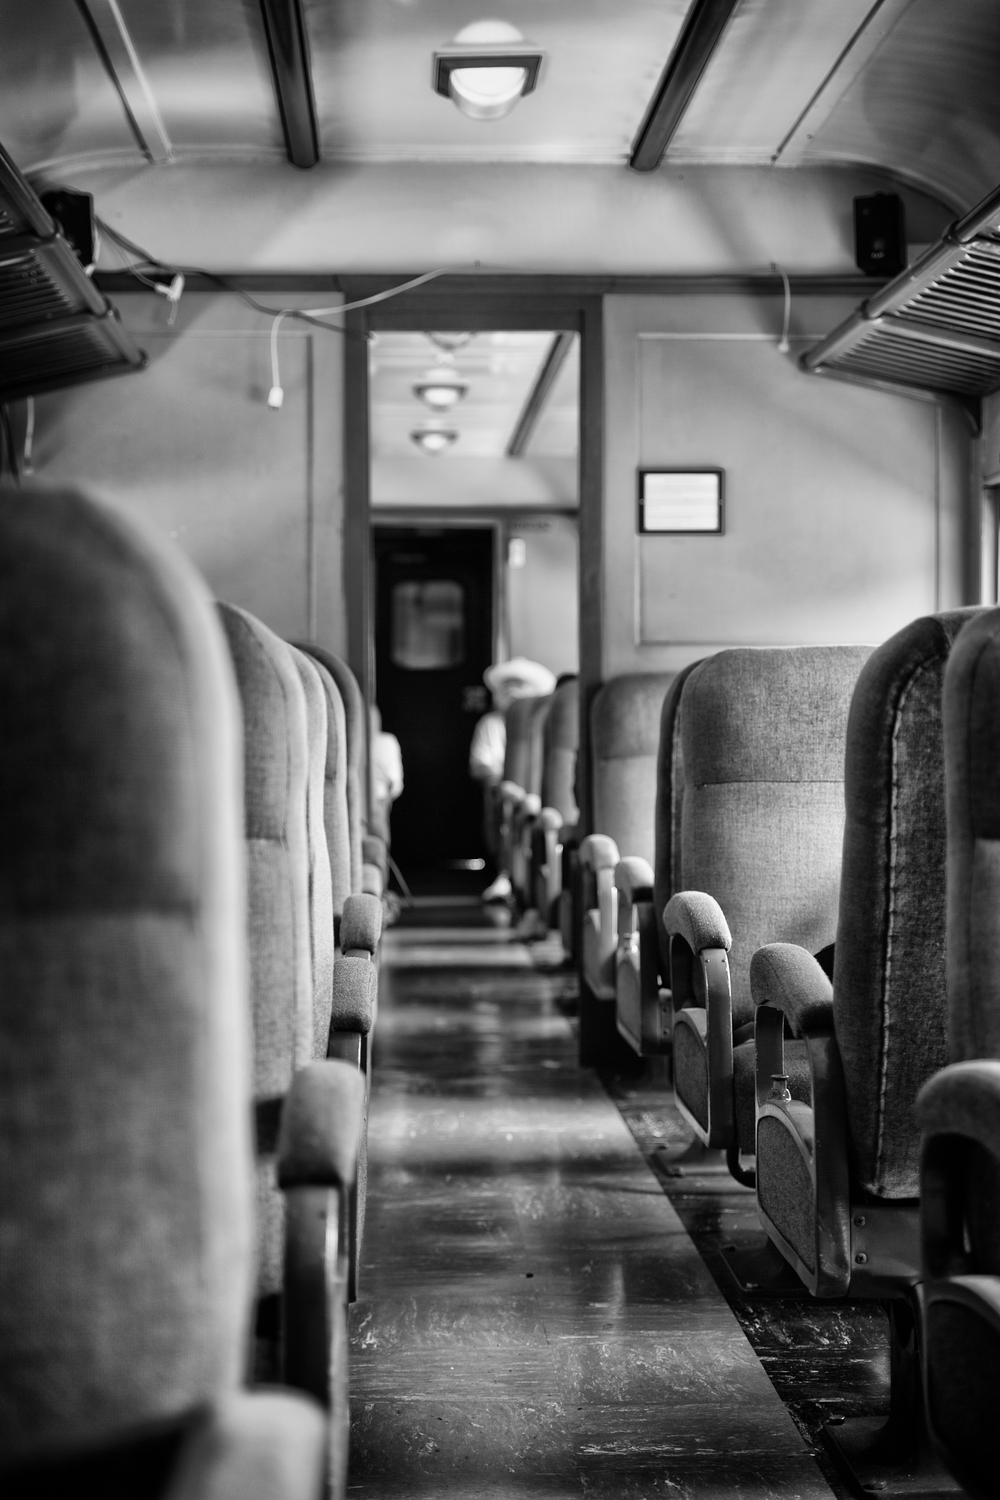 Train PAssenger Car (1 of 1).jpg